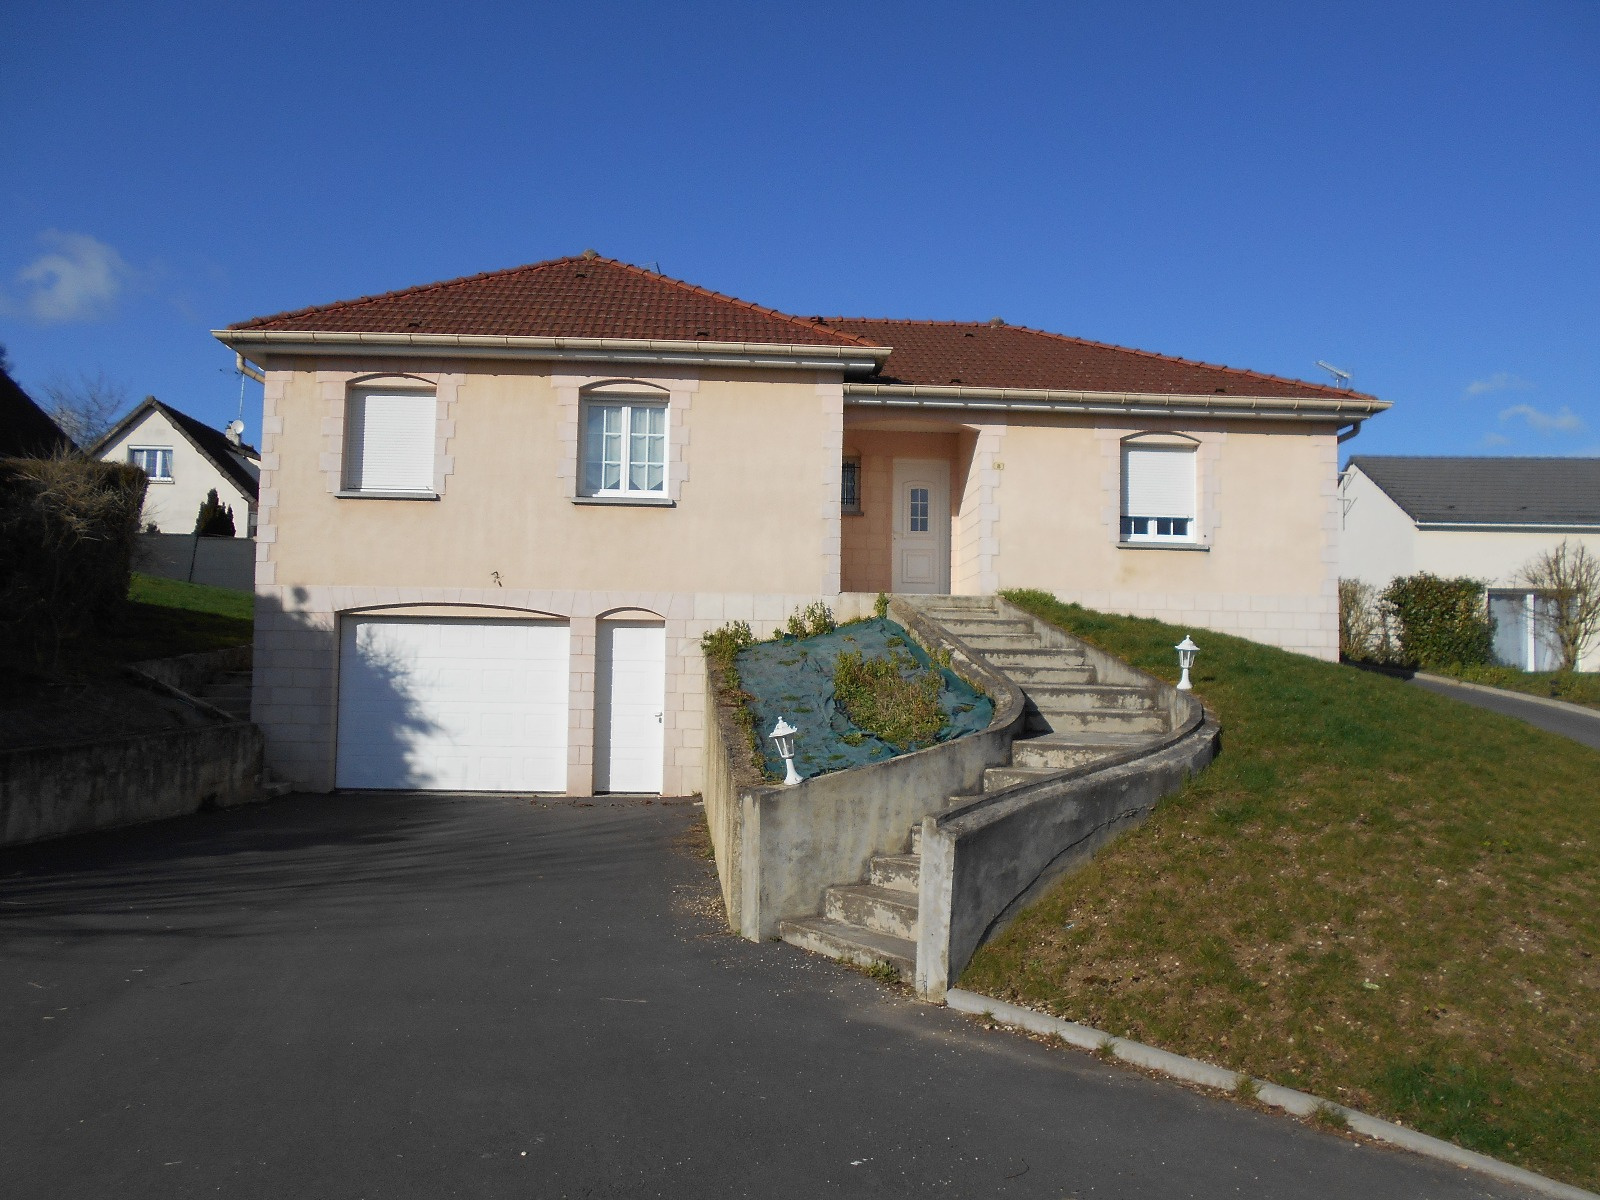 Immobilier rethel 08300 ardennes annonces immobili res for Achat maison ardennes